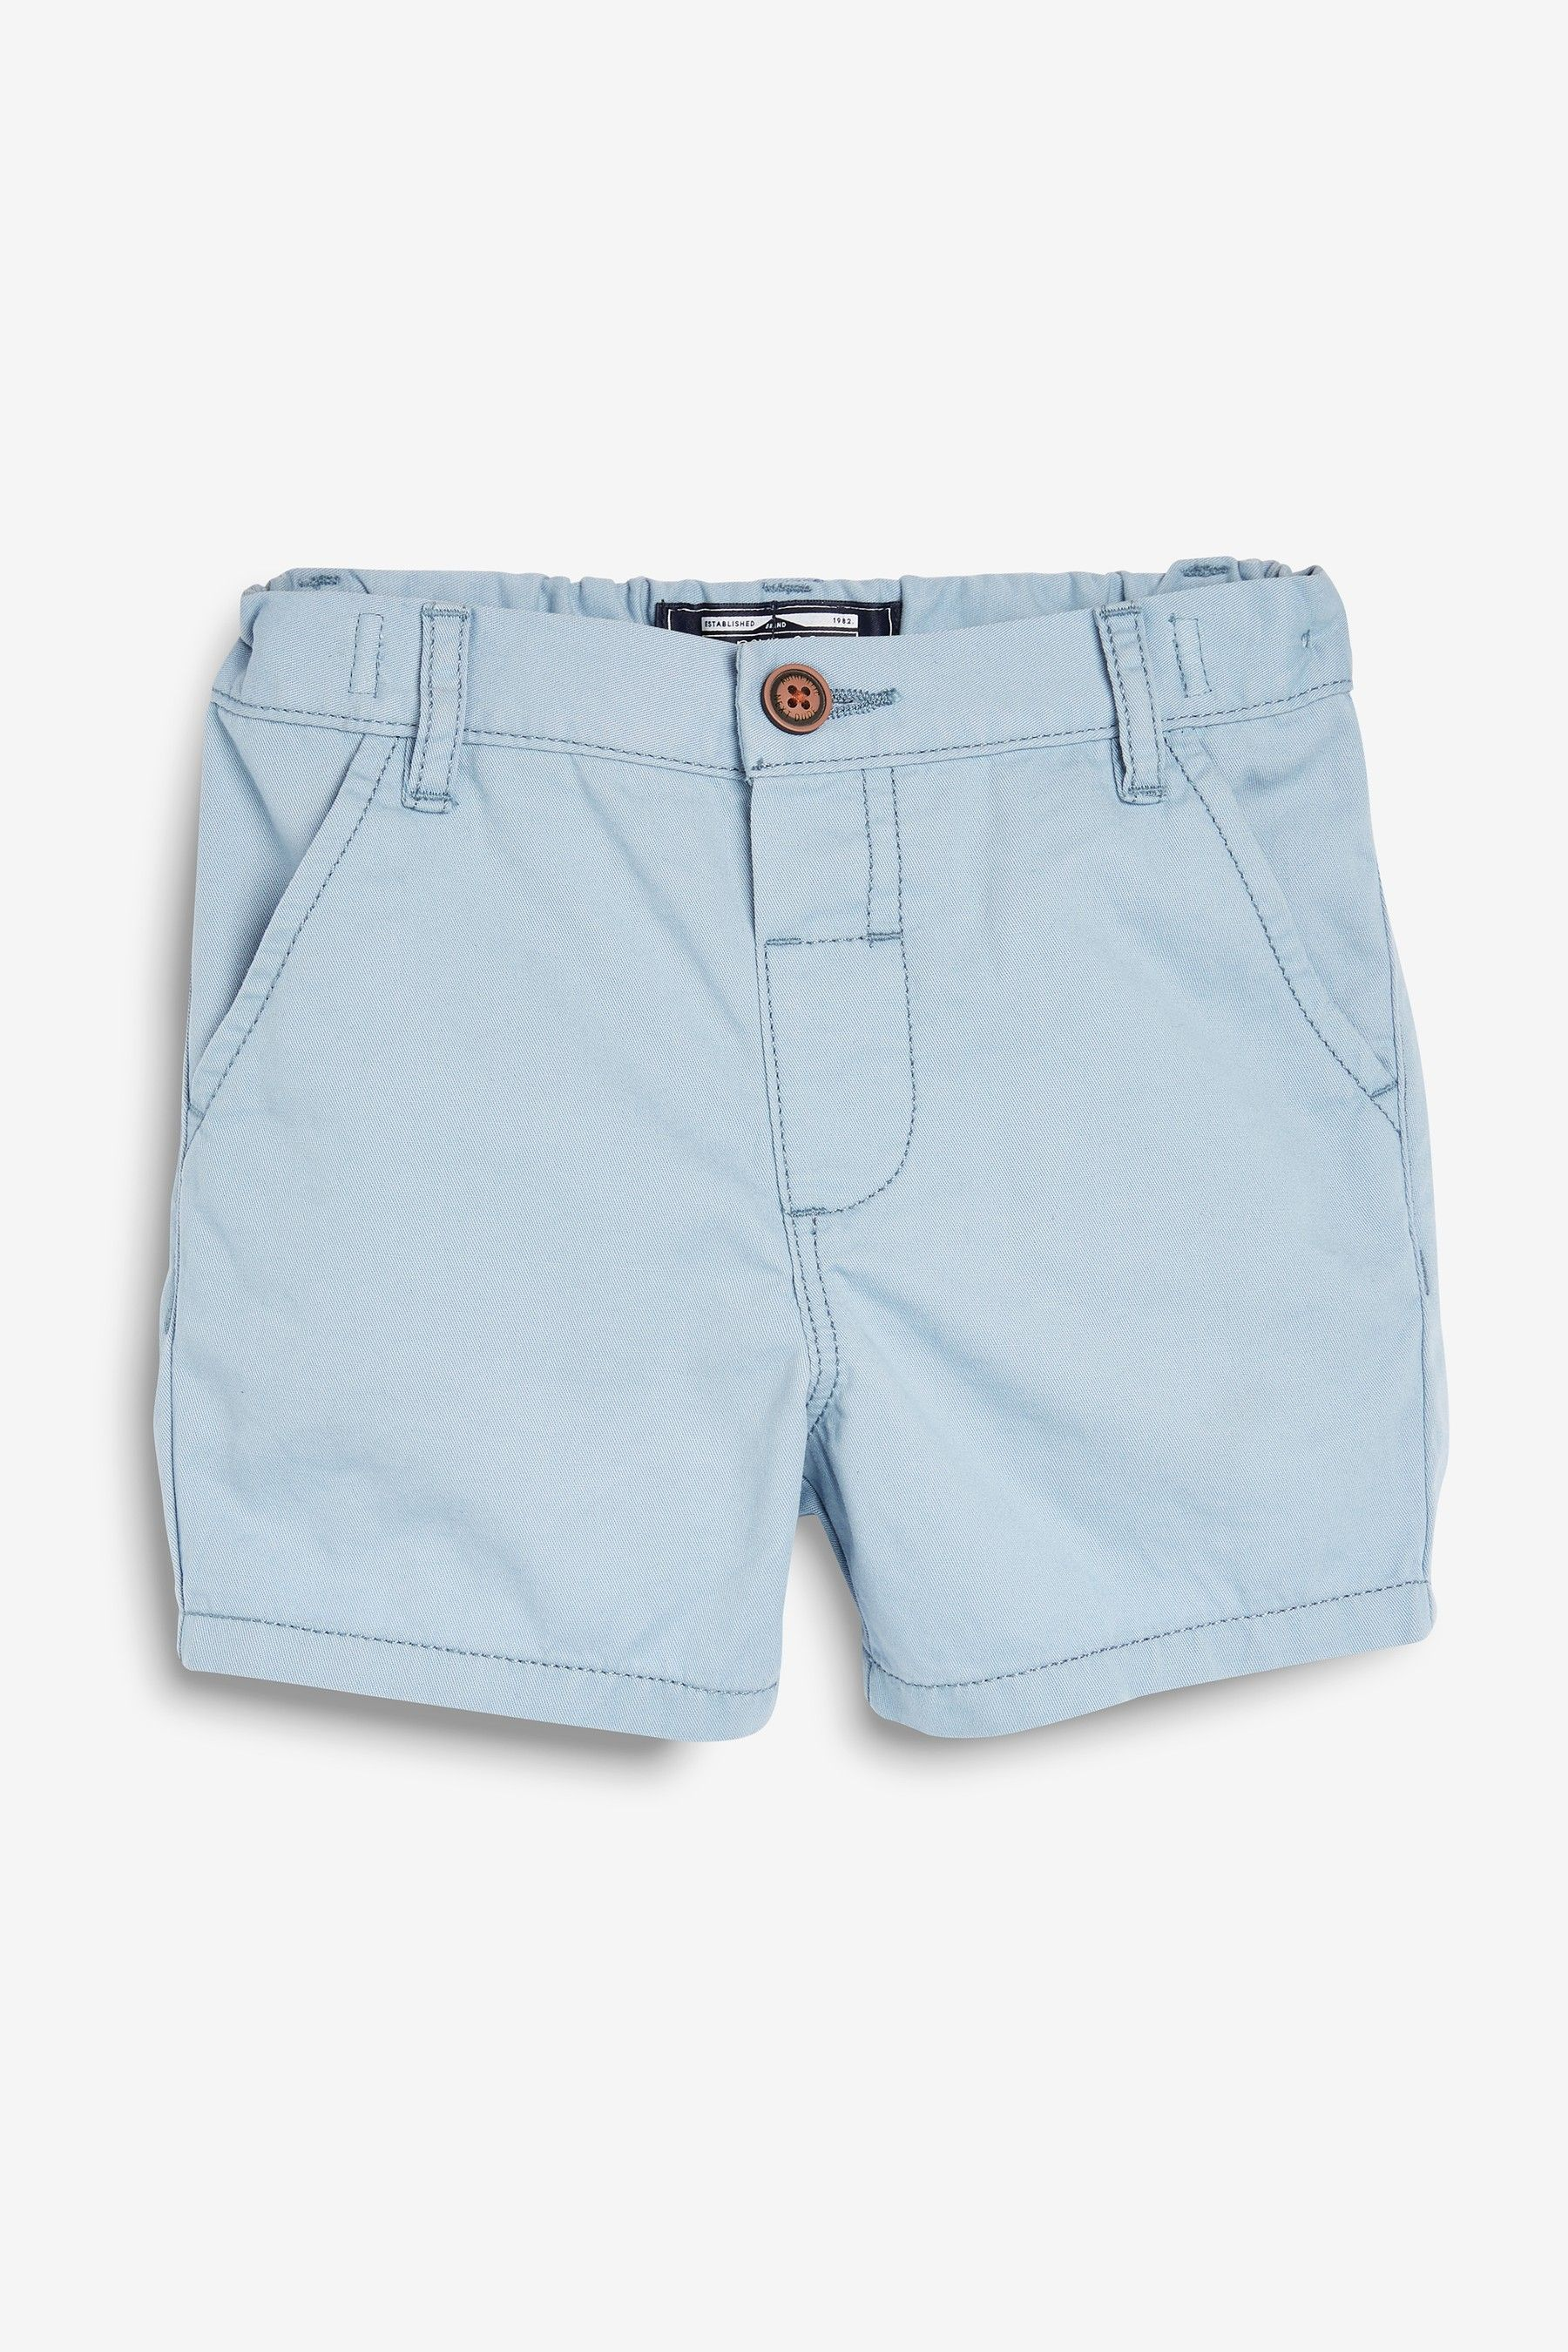 Boys Next Light Blue Chino Shorts (3mths-7yrs) -  Blue #lightblueshorts